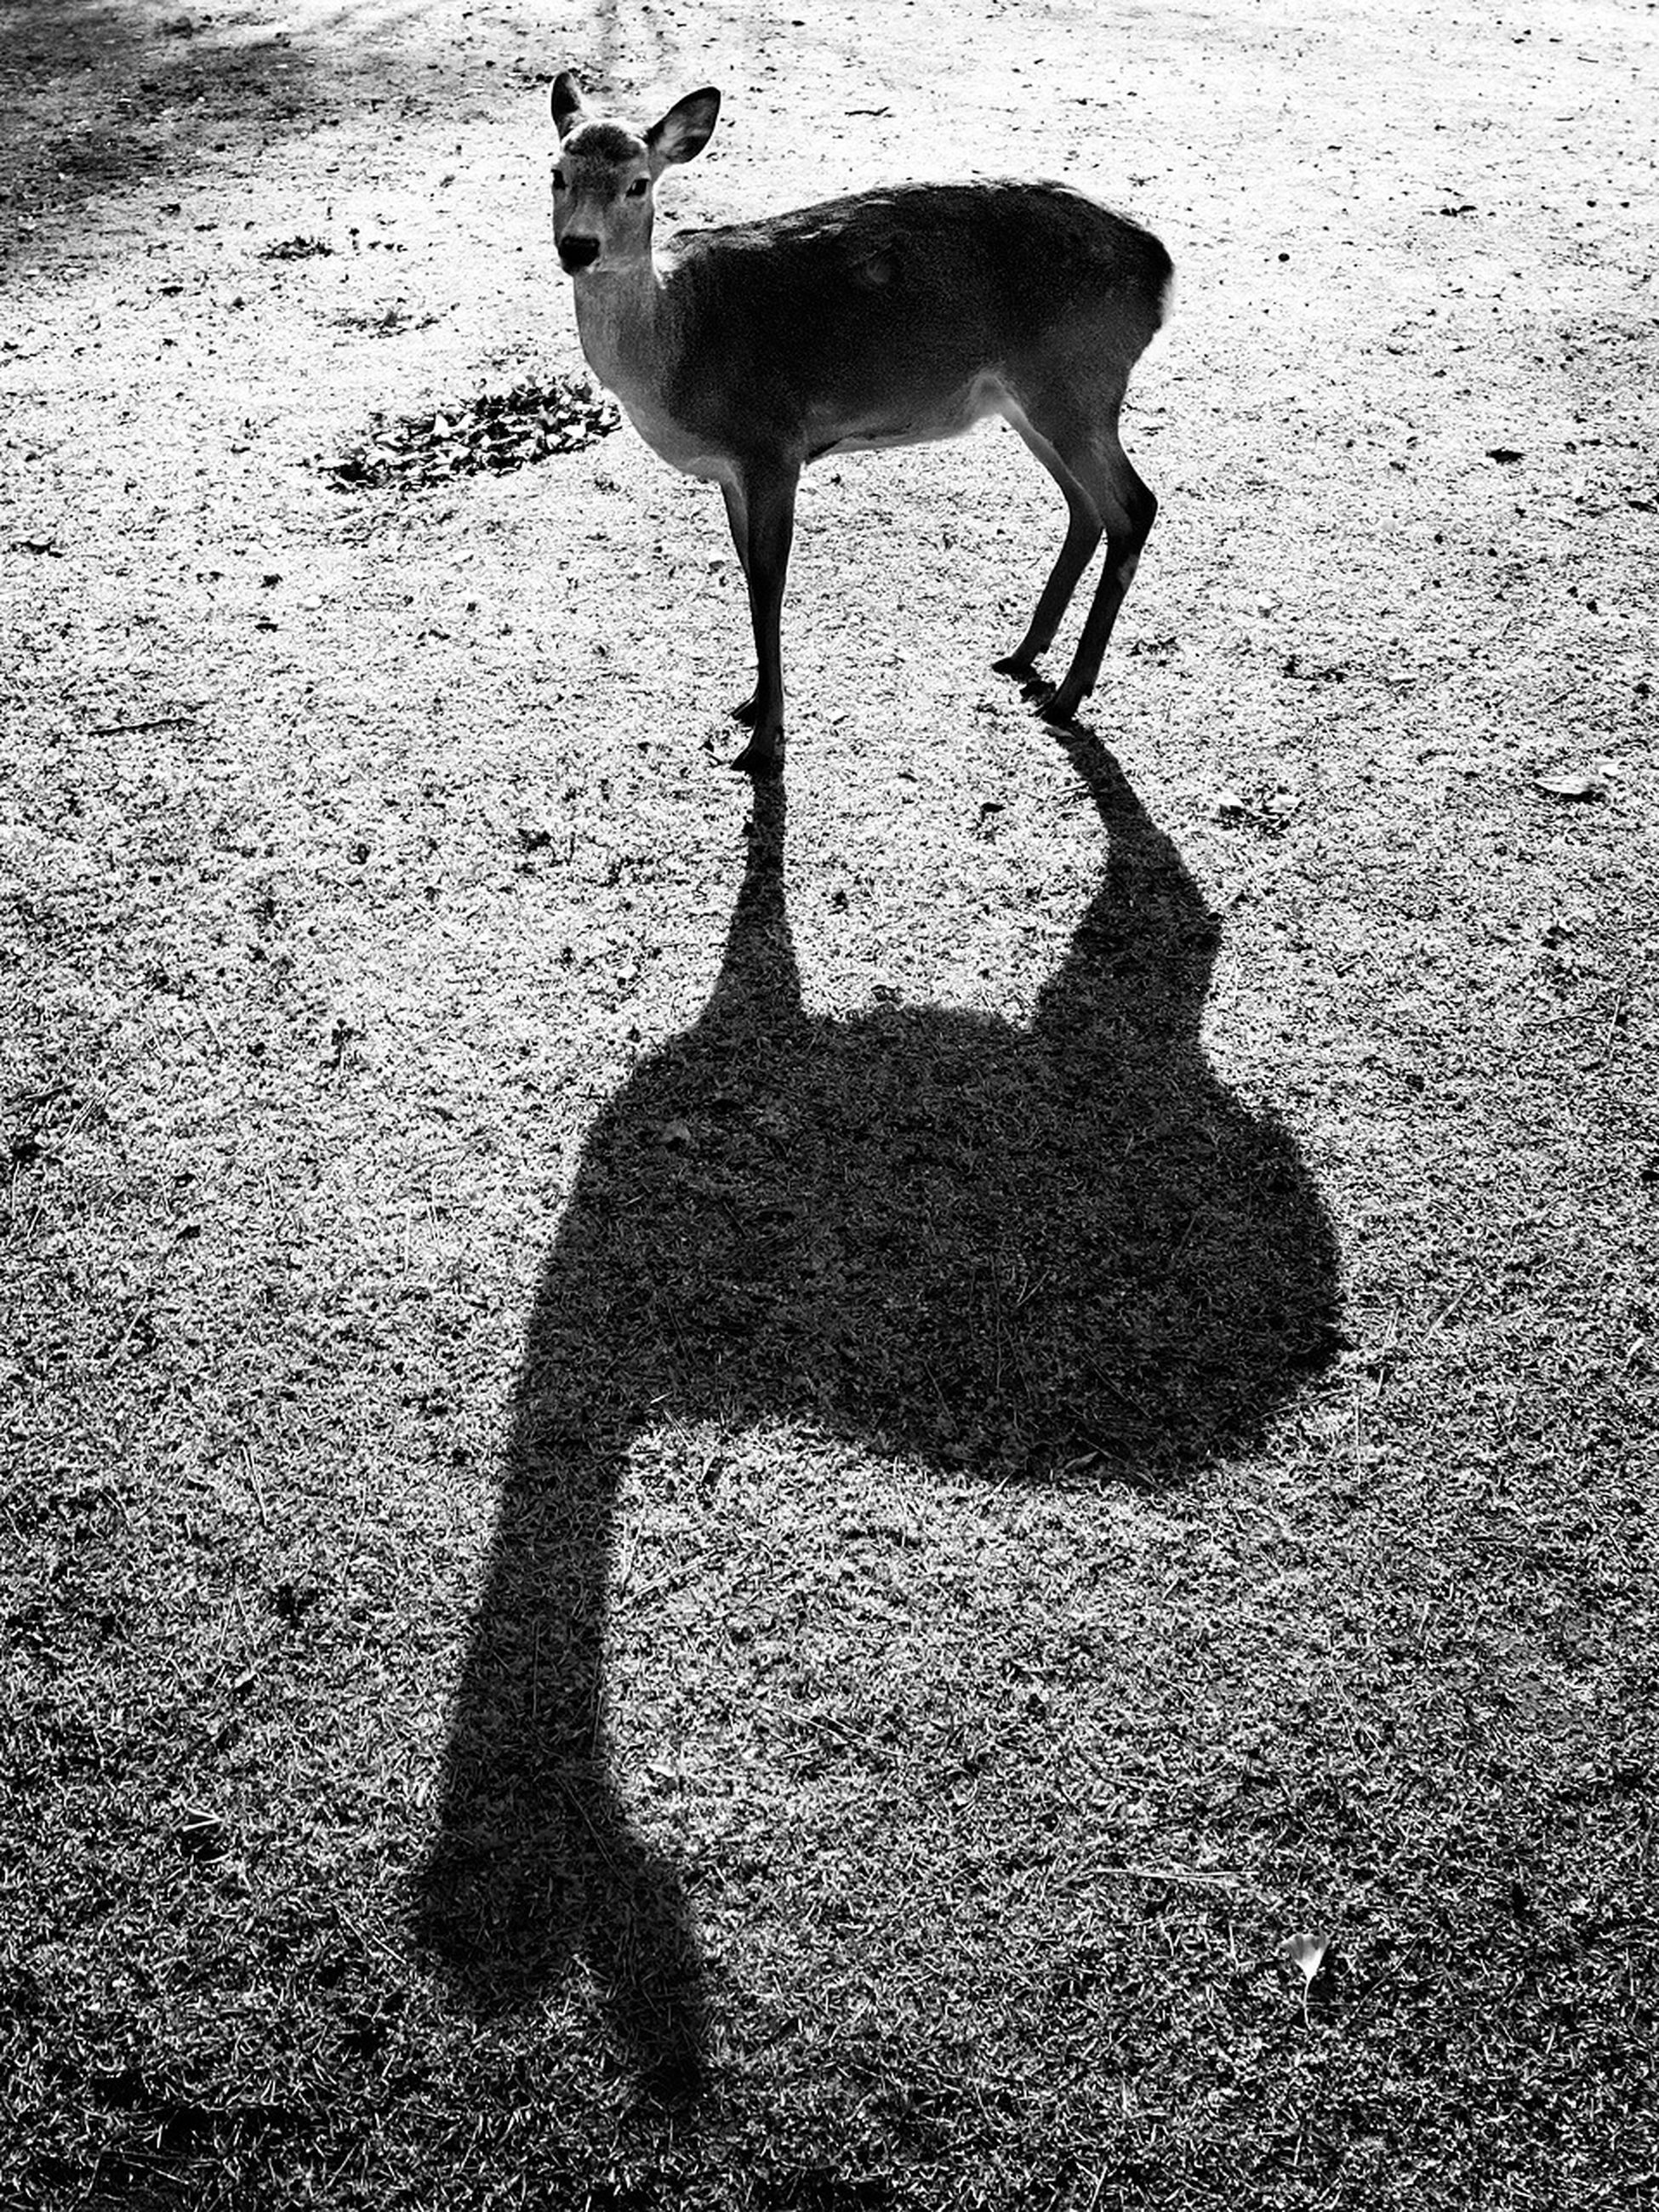 animal themes, one animal, domestic animals, mammal, street, high angle view, shadow, pets, wildlife, animals in the wild, road, sunlight, dog, asphalt, walking, full length, two animals, day, no people, outdoors